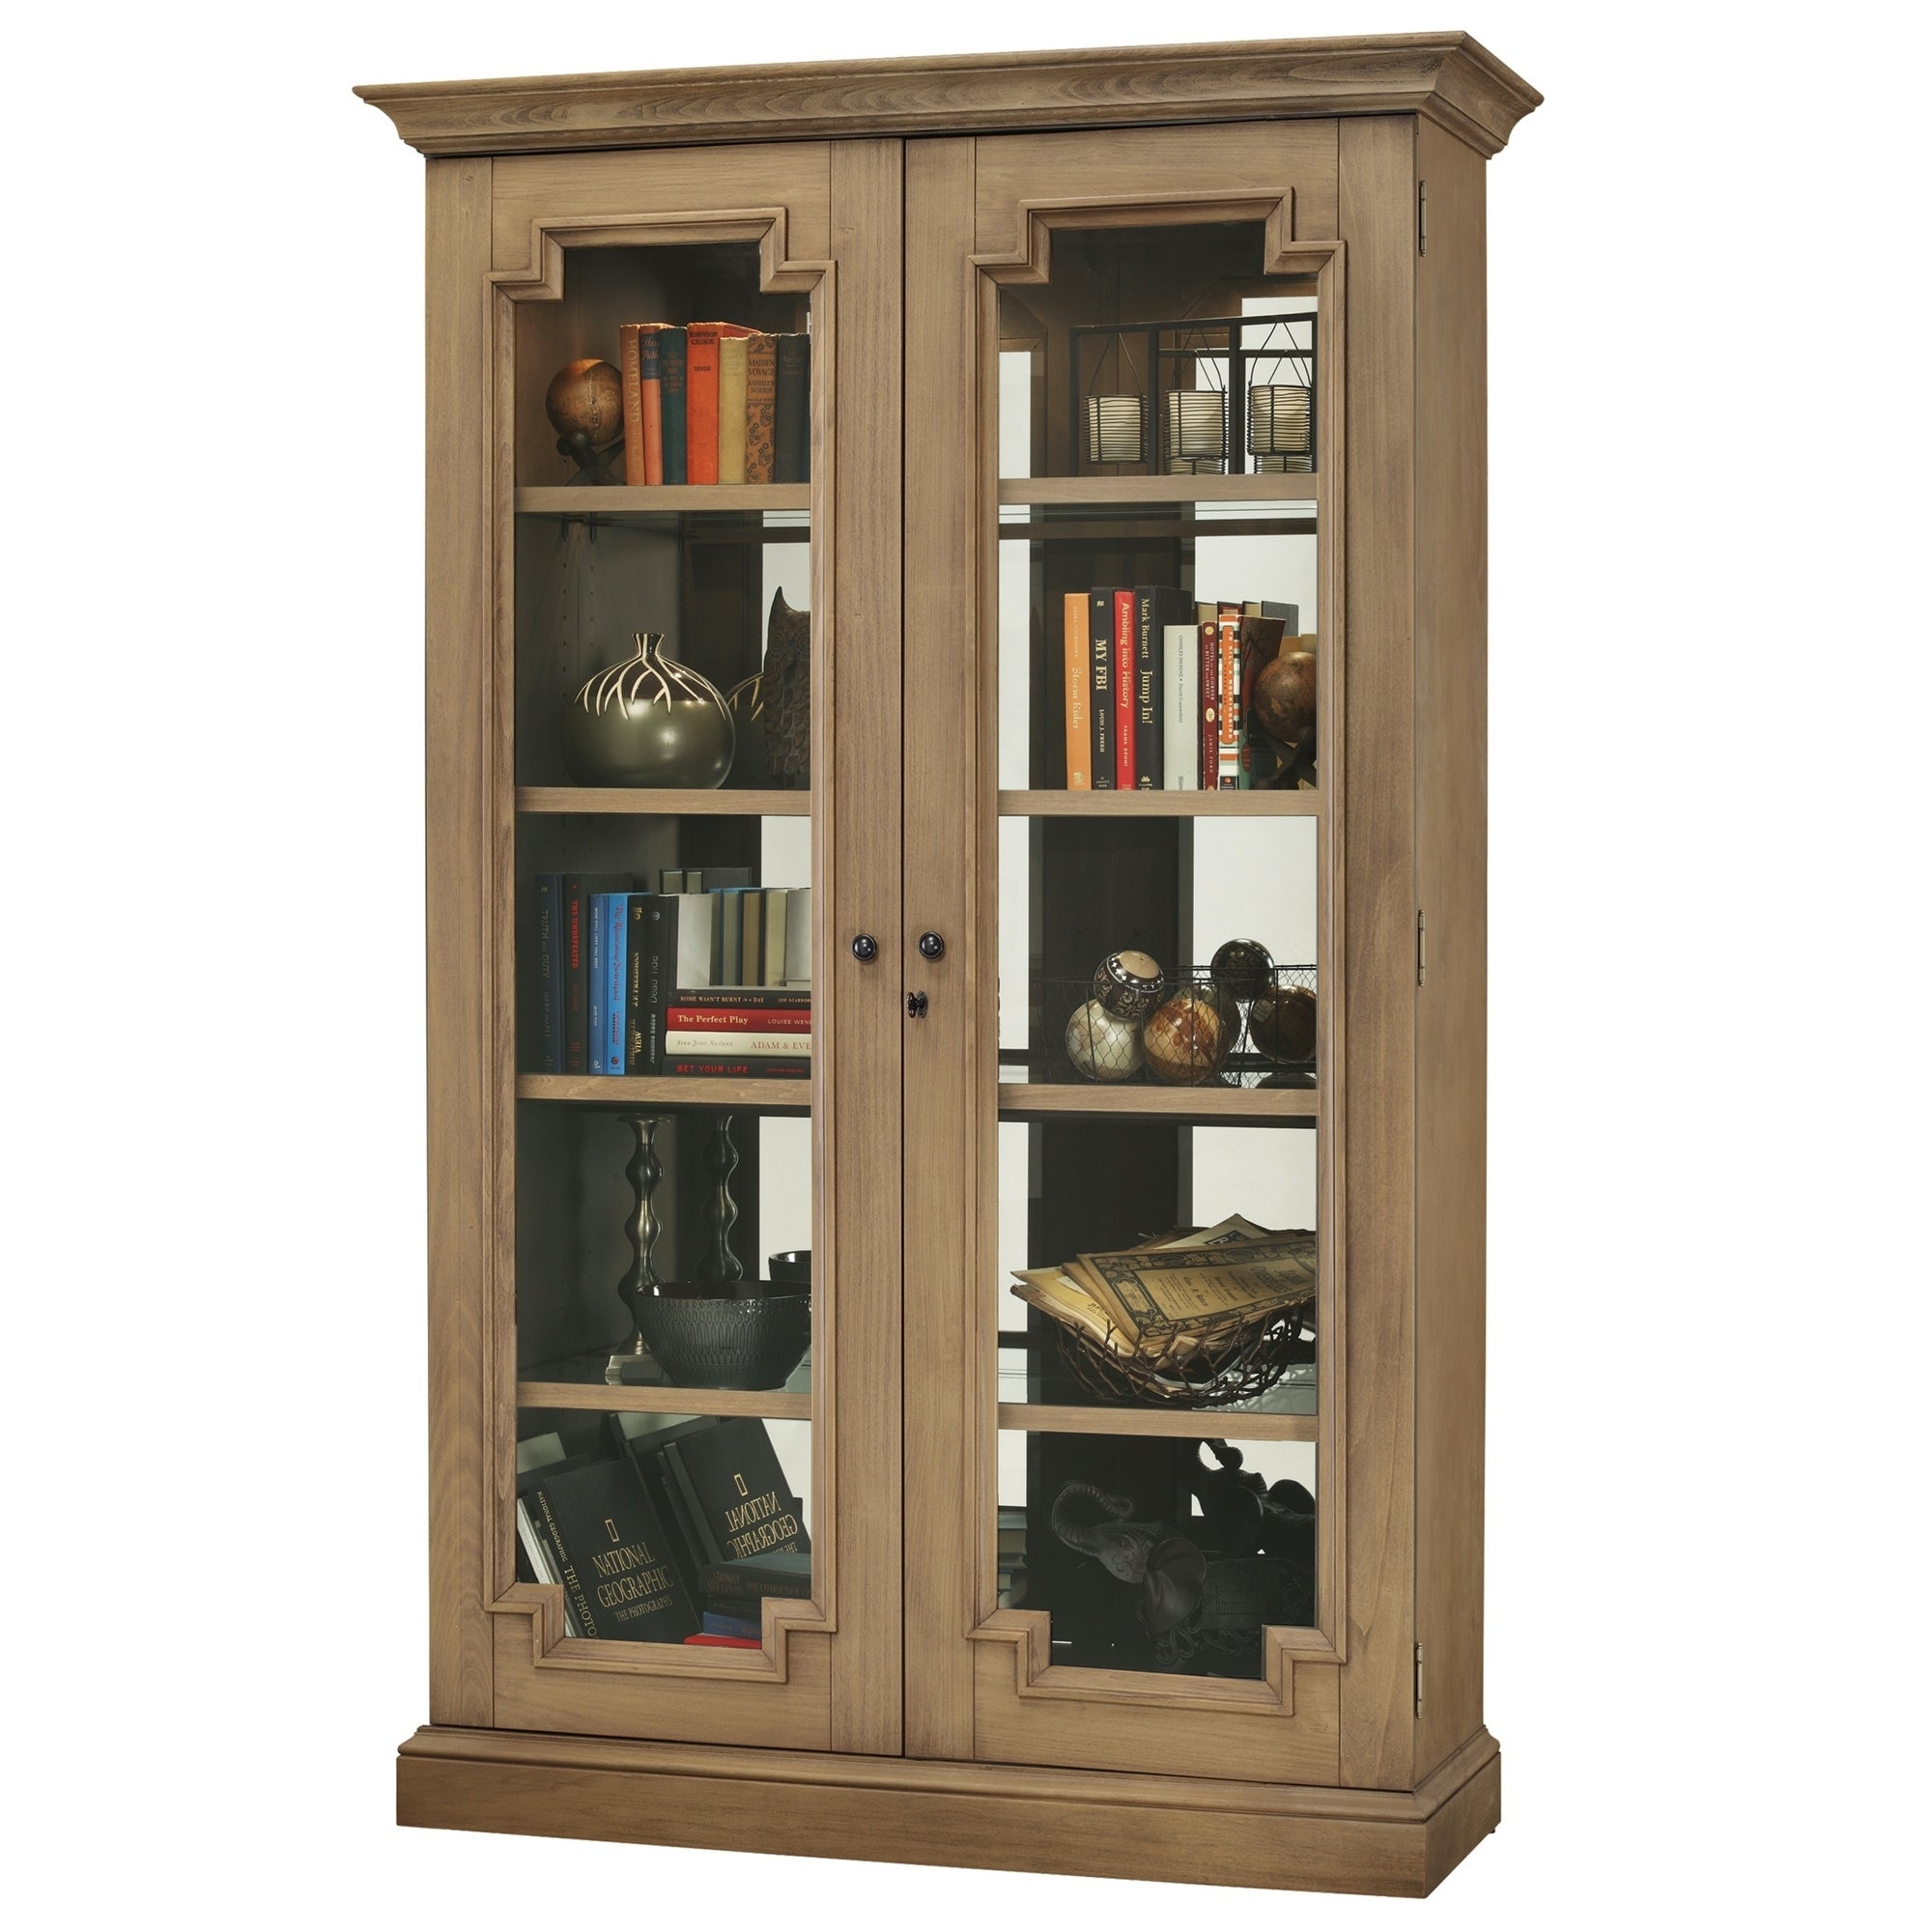 Howard Miller Desmond Iv Light Brown Wood 5 Shelf Curio Cabinet Free Shipping Today 23449337